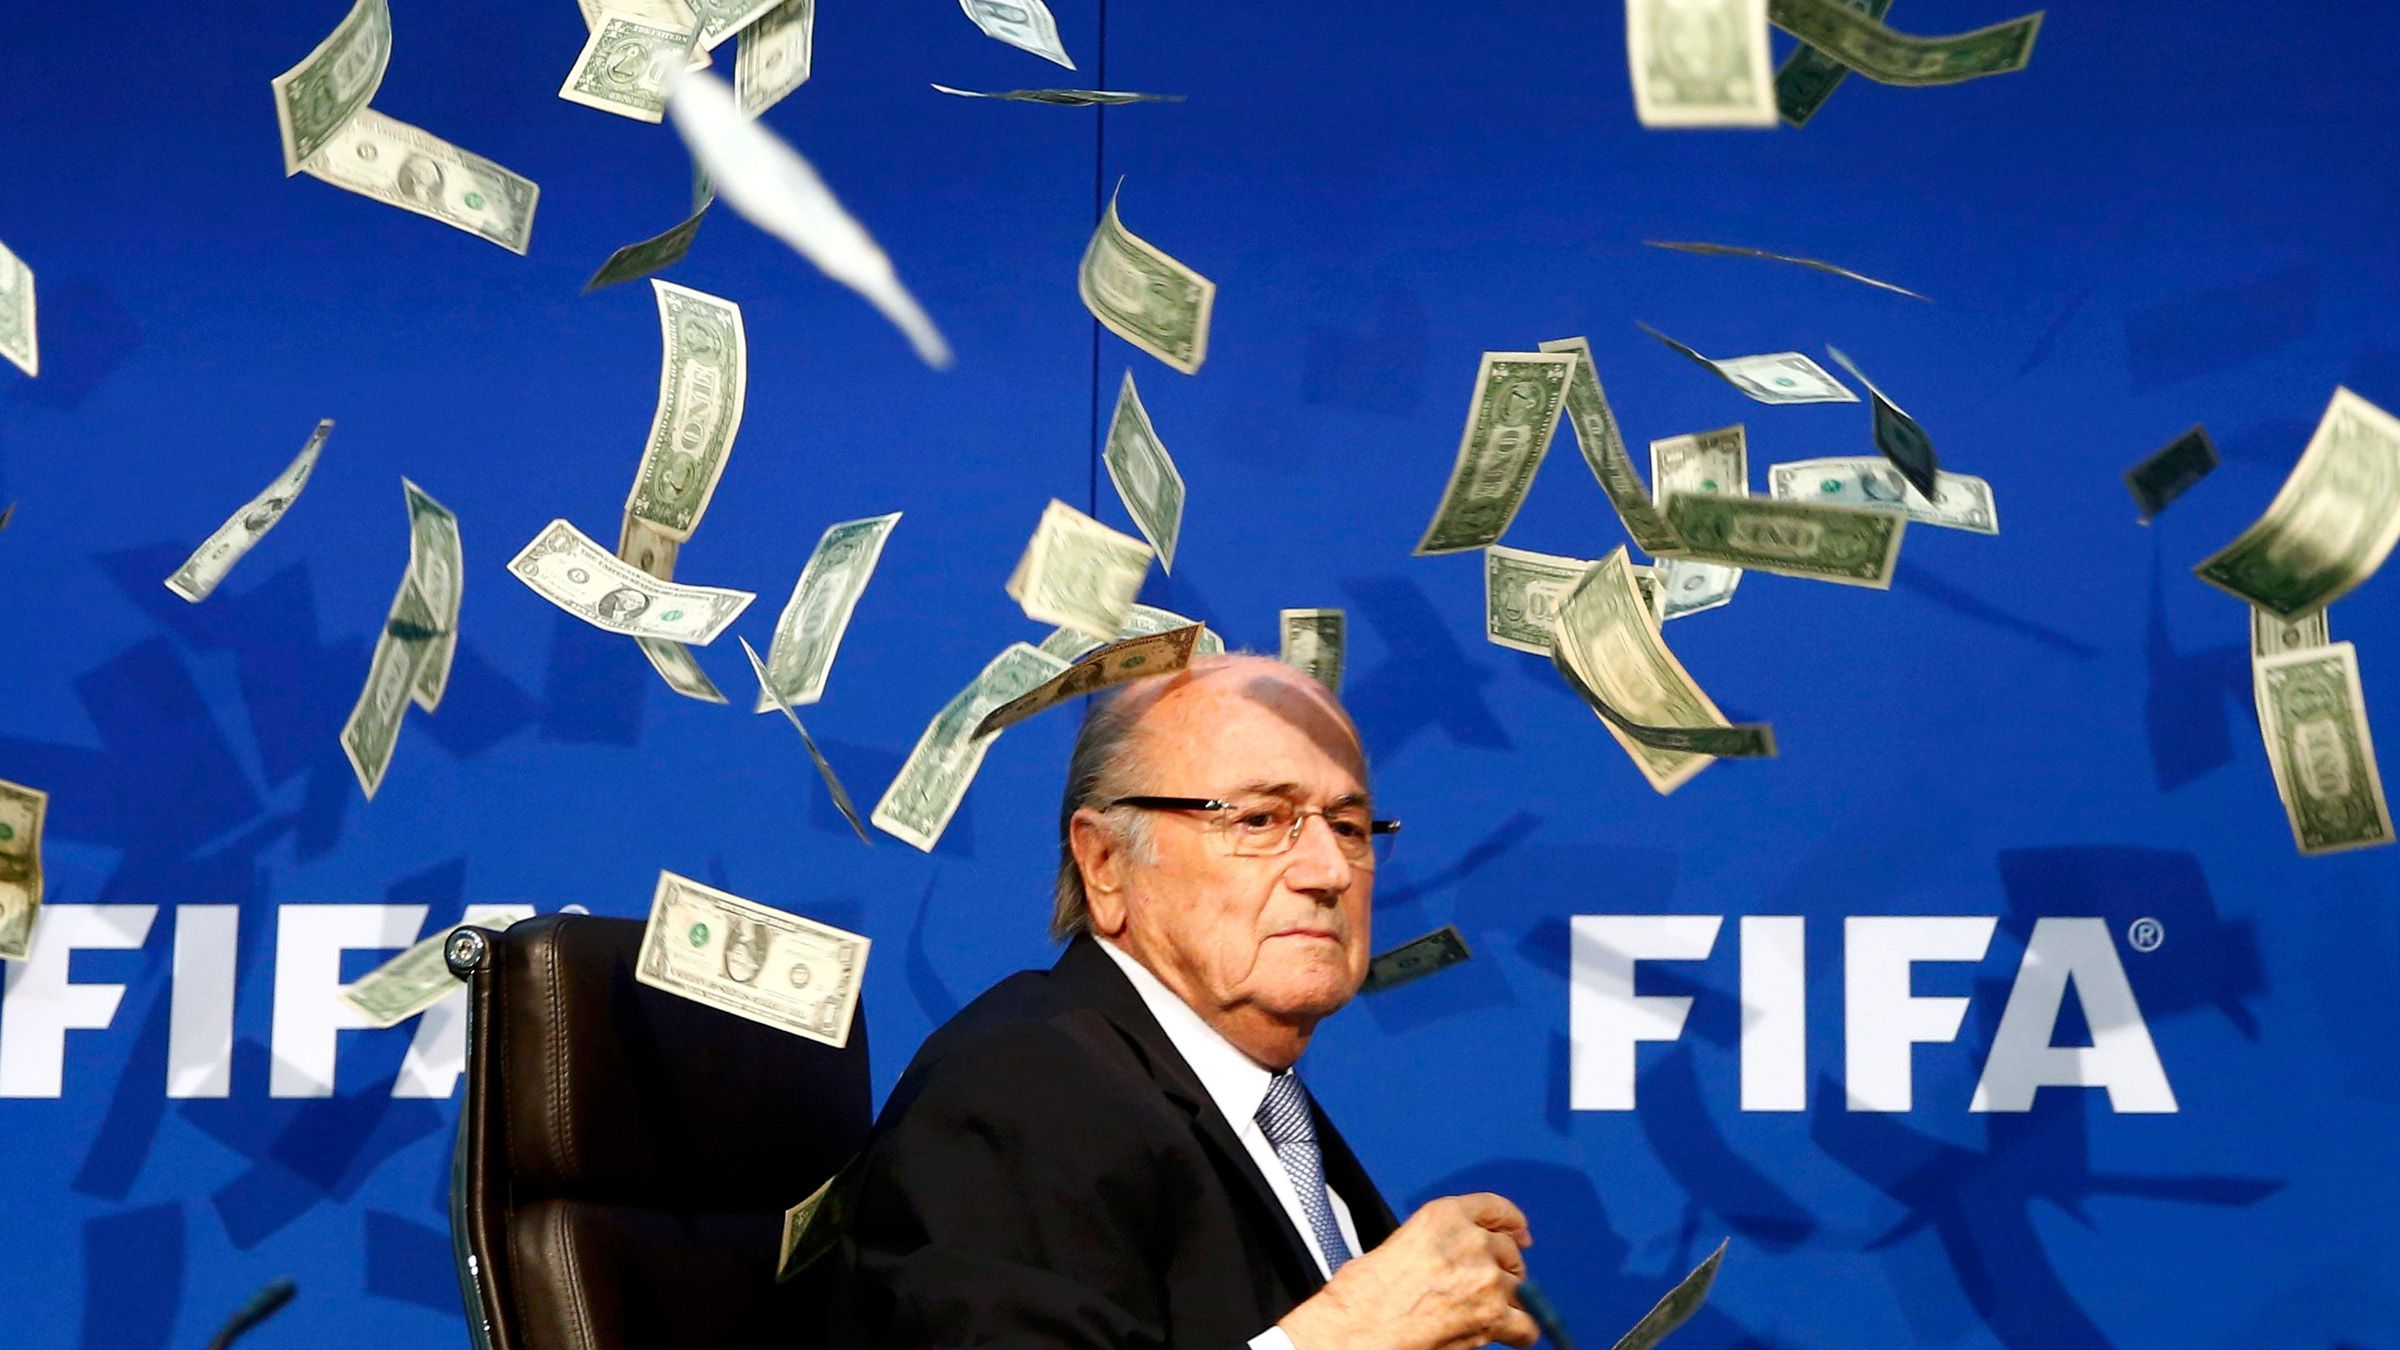 British comedian known as Lee Nelson (unseen) throws banknotes at FIFA President Sepp Blatter as he arrives for a news conference after the Extraordinary FIFA Executive Committee Meeting at the FIFA headquarters in Zurich, Switzerland July 20, 2015. World football's troubled governing body FIFA will vote for a new president, to replace Sepp Blatter, at a special congress to be held on February 26 in Zurich, the organisation said on Monday.